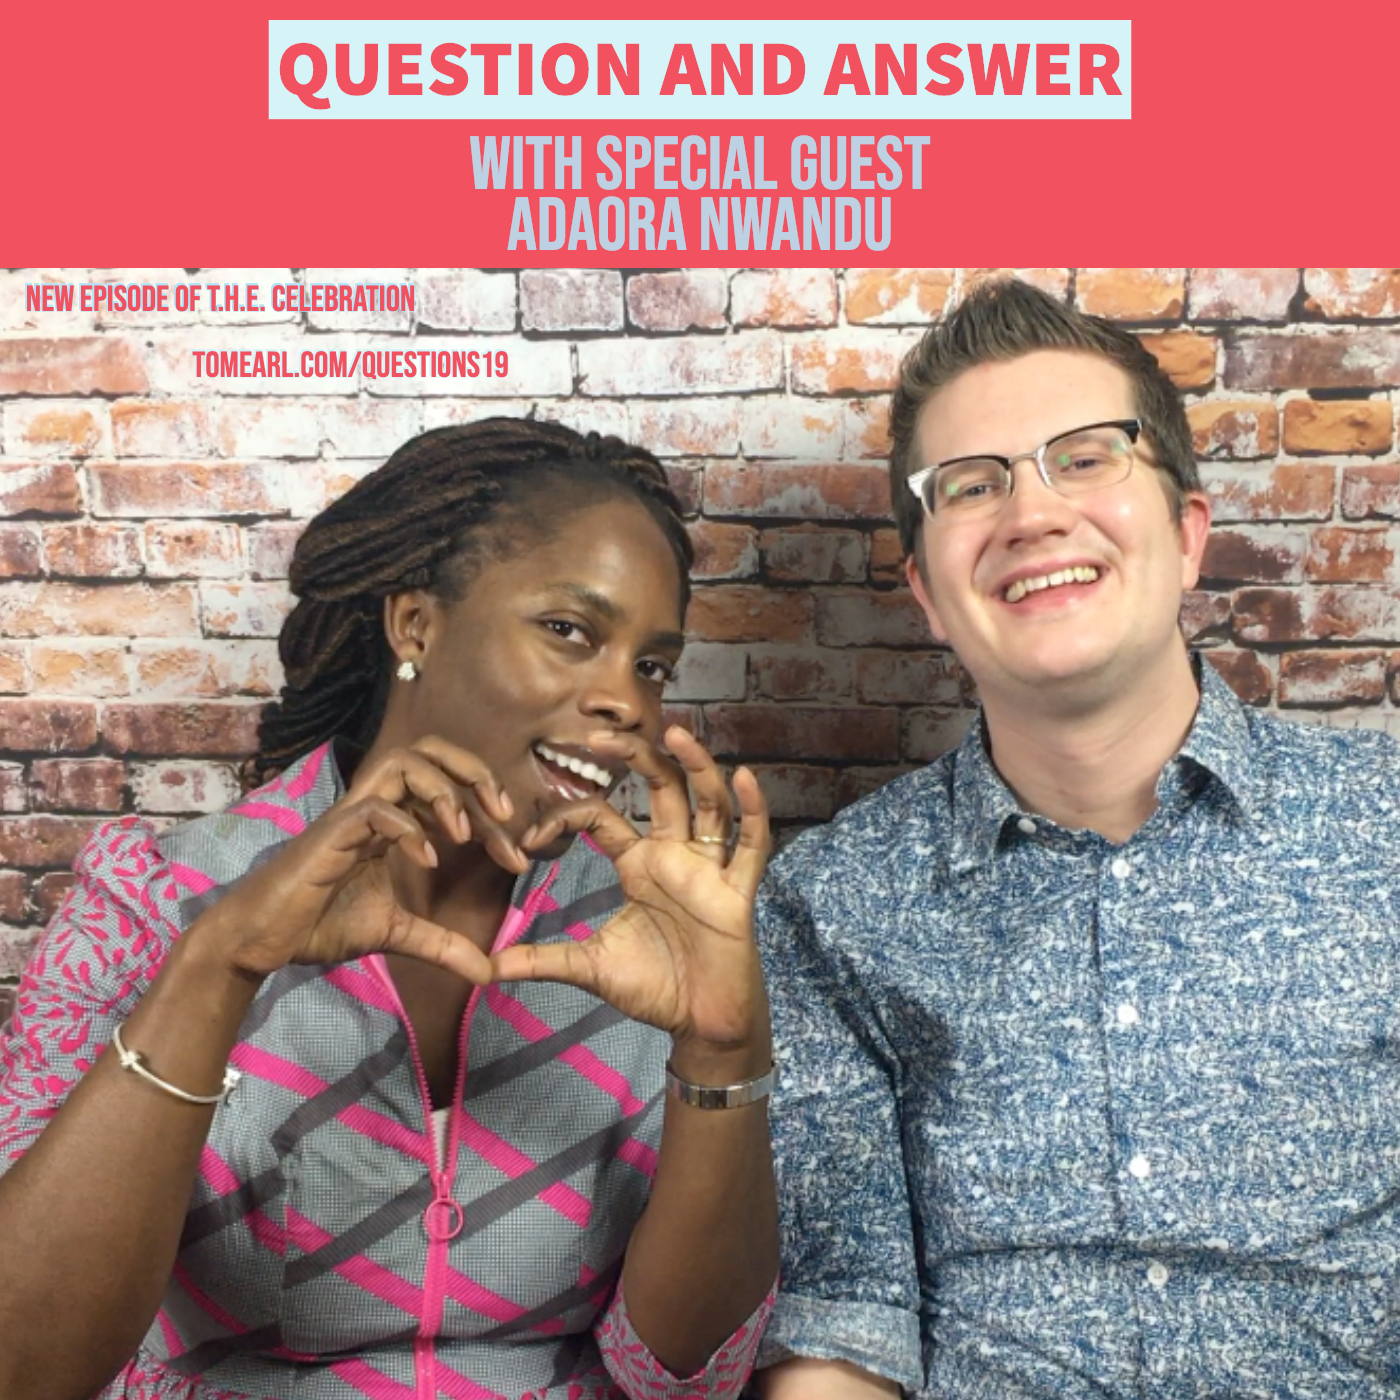 q and a podcast Copy (1).jpg